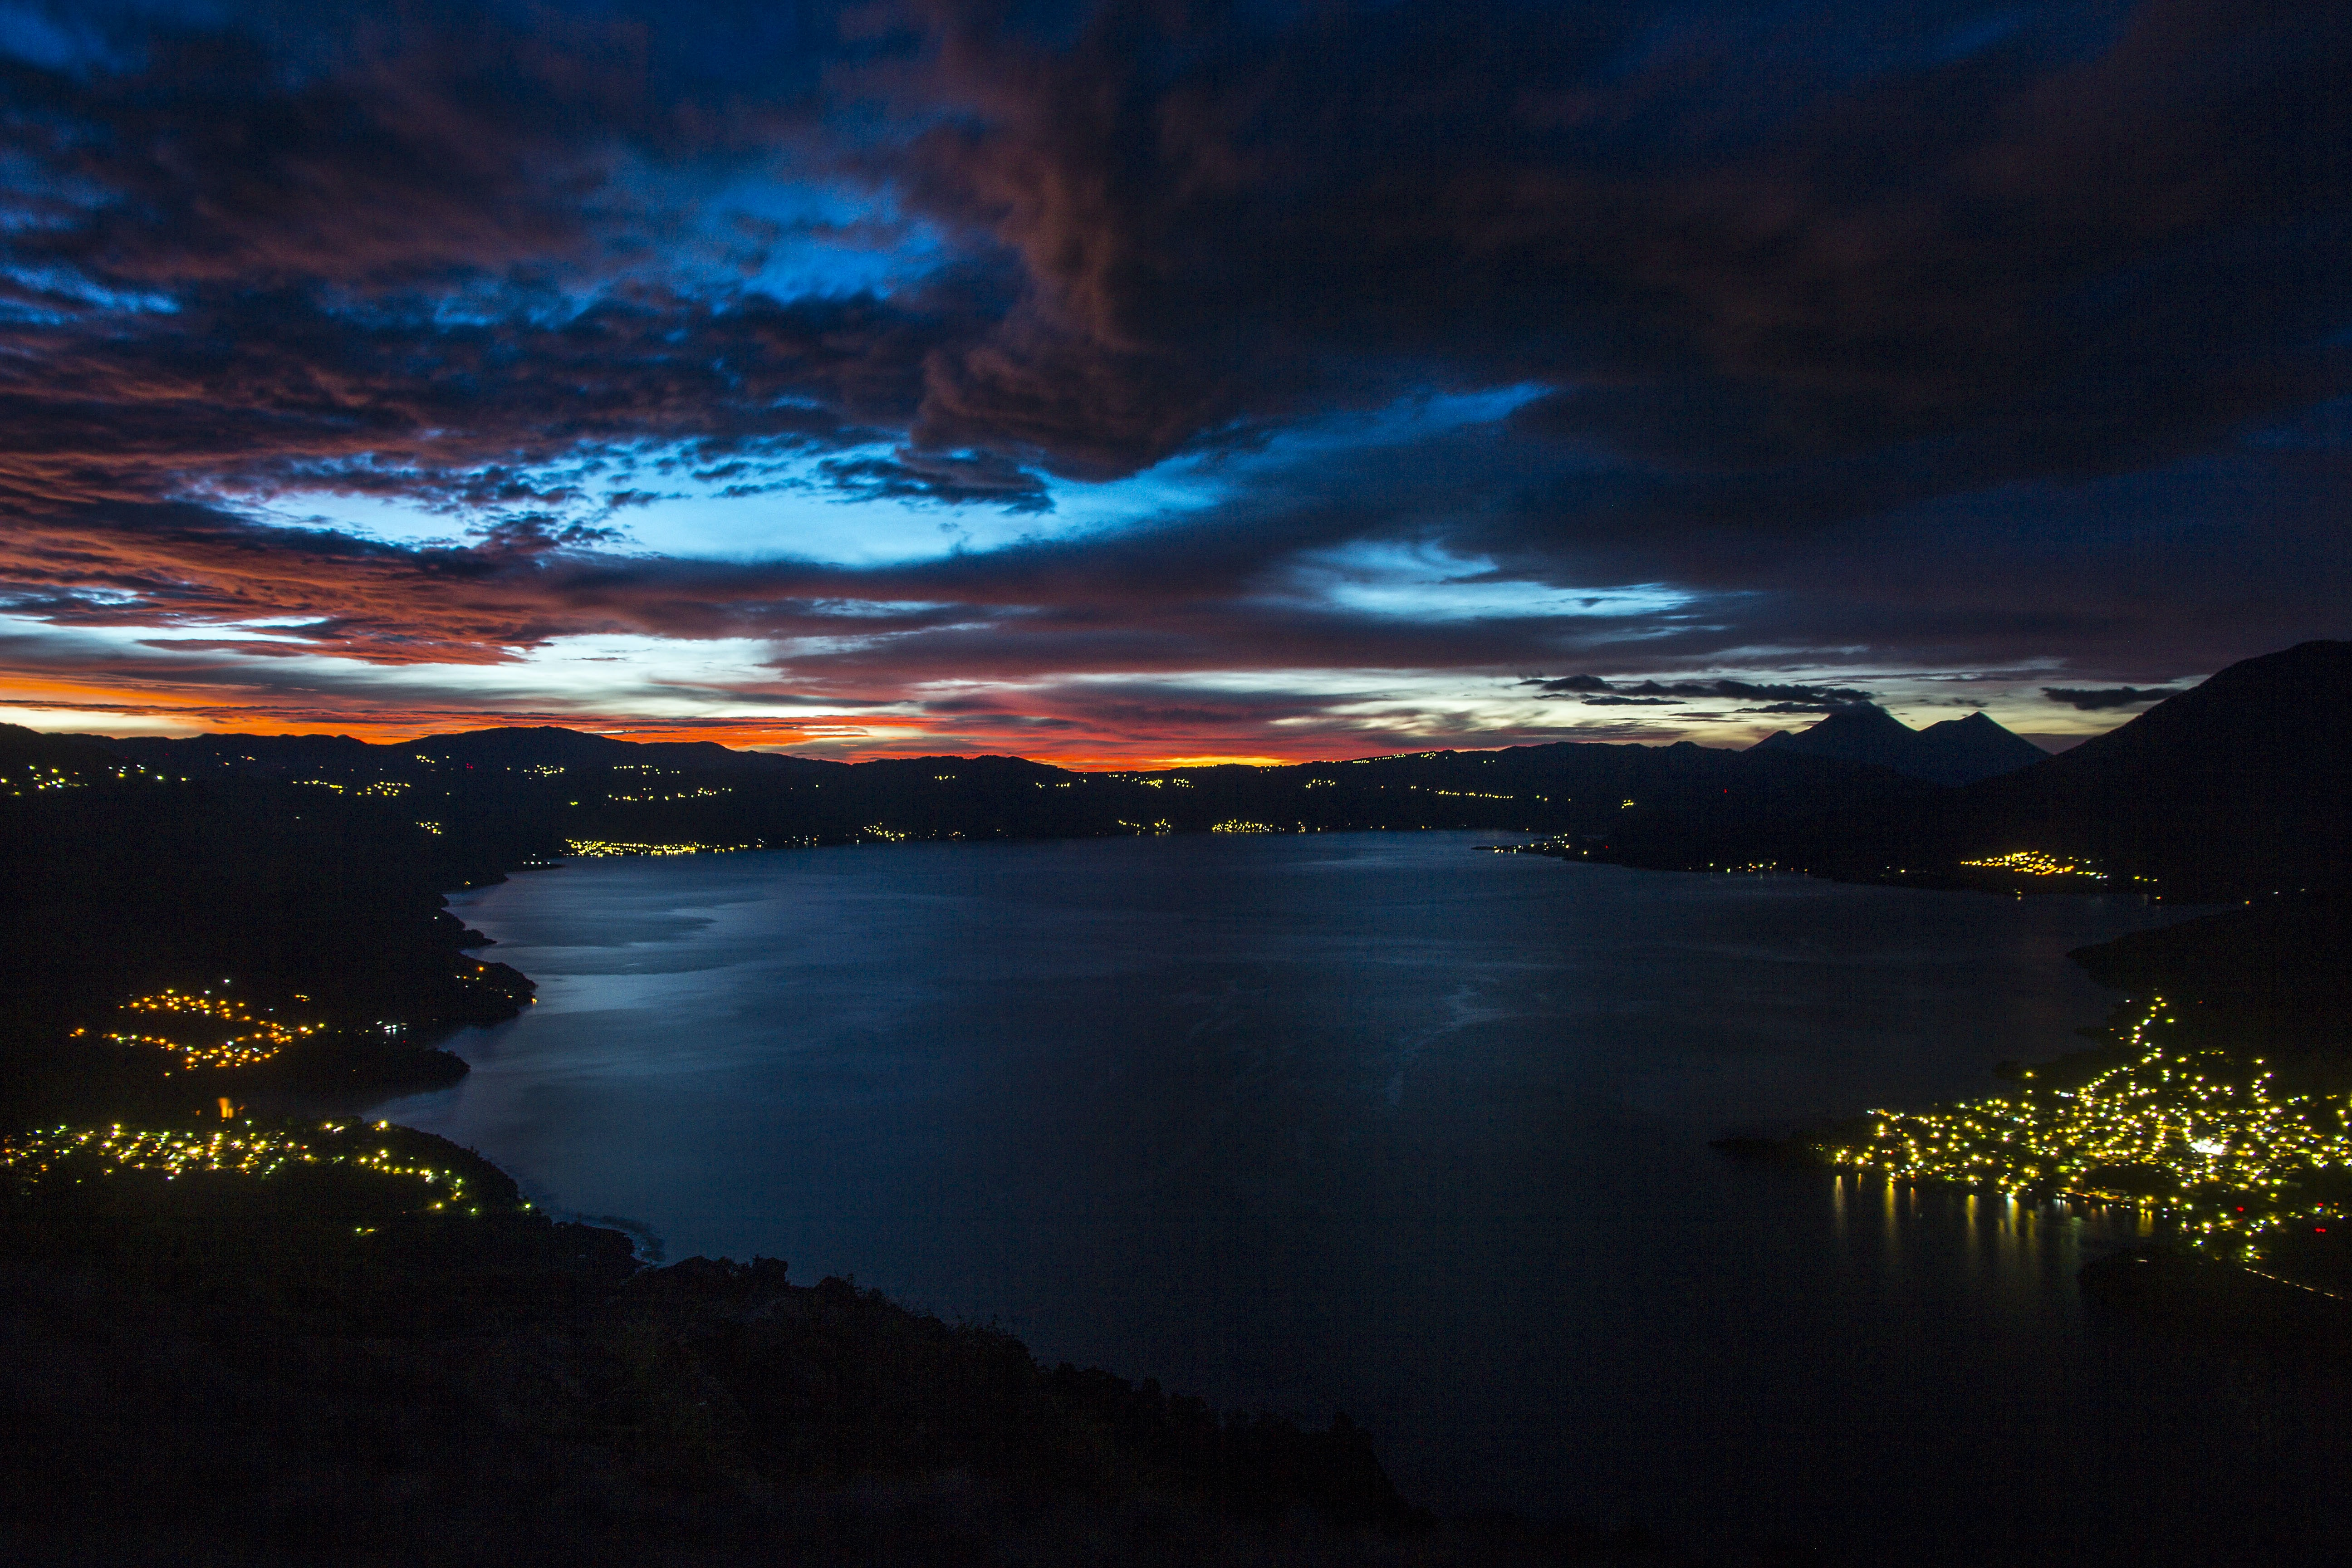 Night scene with illuminated sky over Lake Atitlán in San Pedro La Laguna